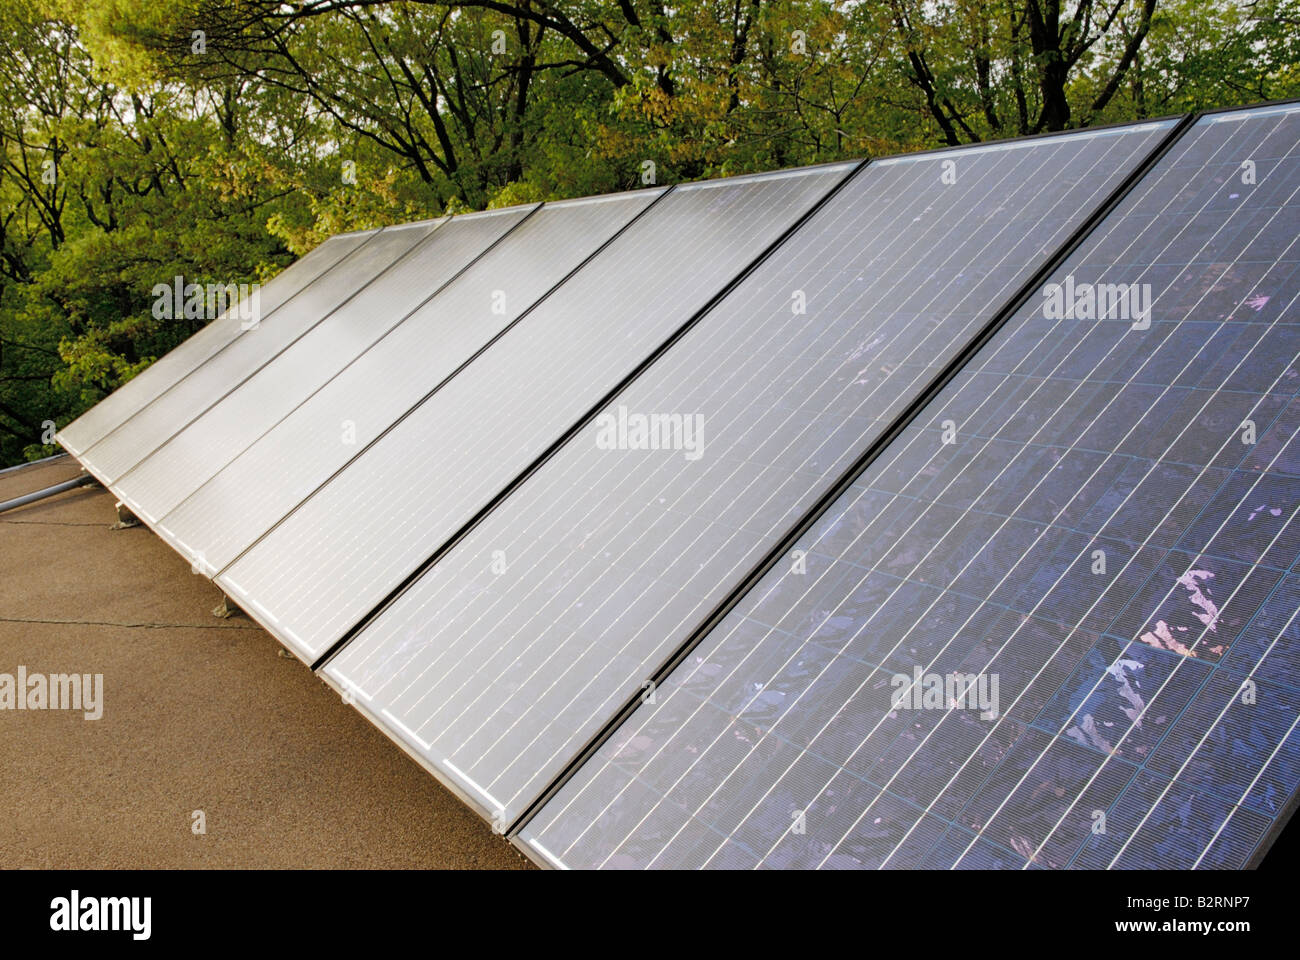 Photovoltaic solar energy panels on the roof of a home - Stock Image